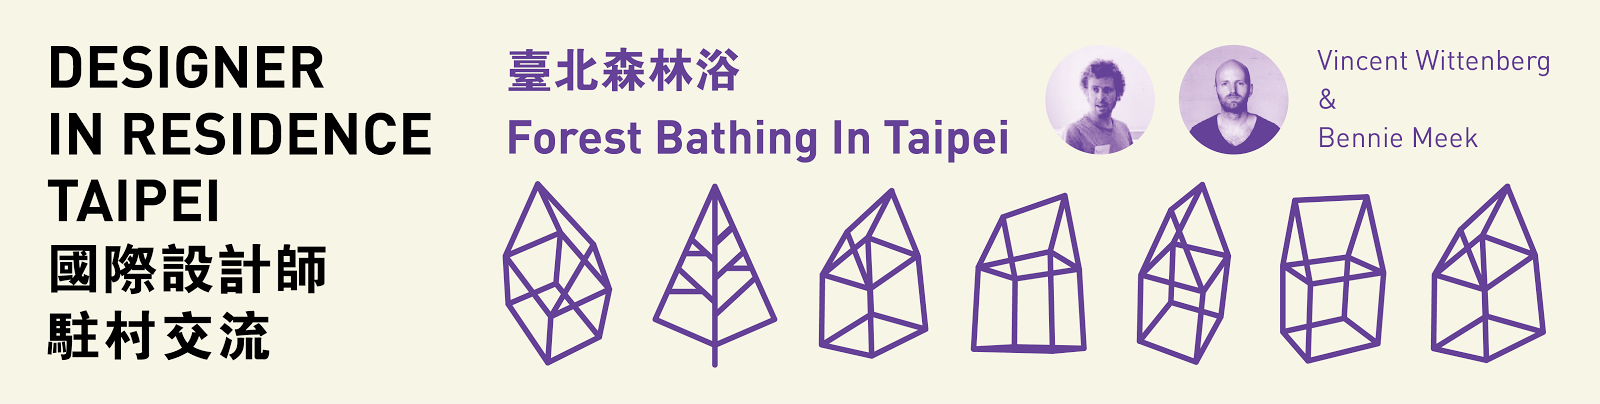 World Design Capital Taipei 2016 Designers in Residence Taipei Workshop